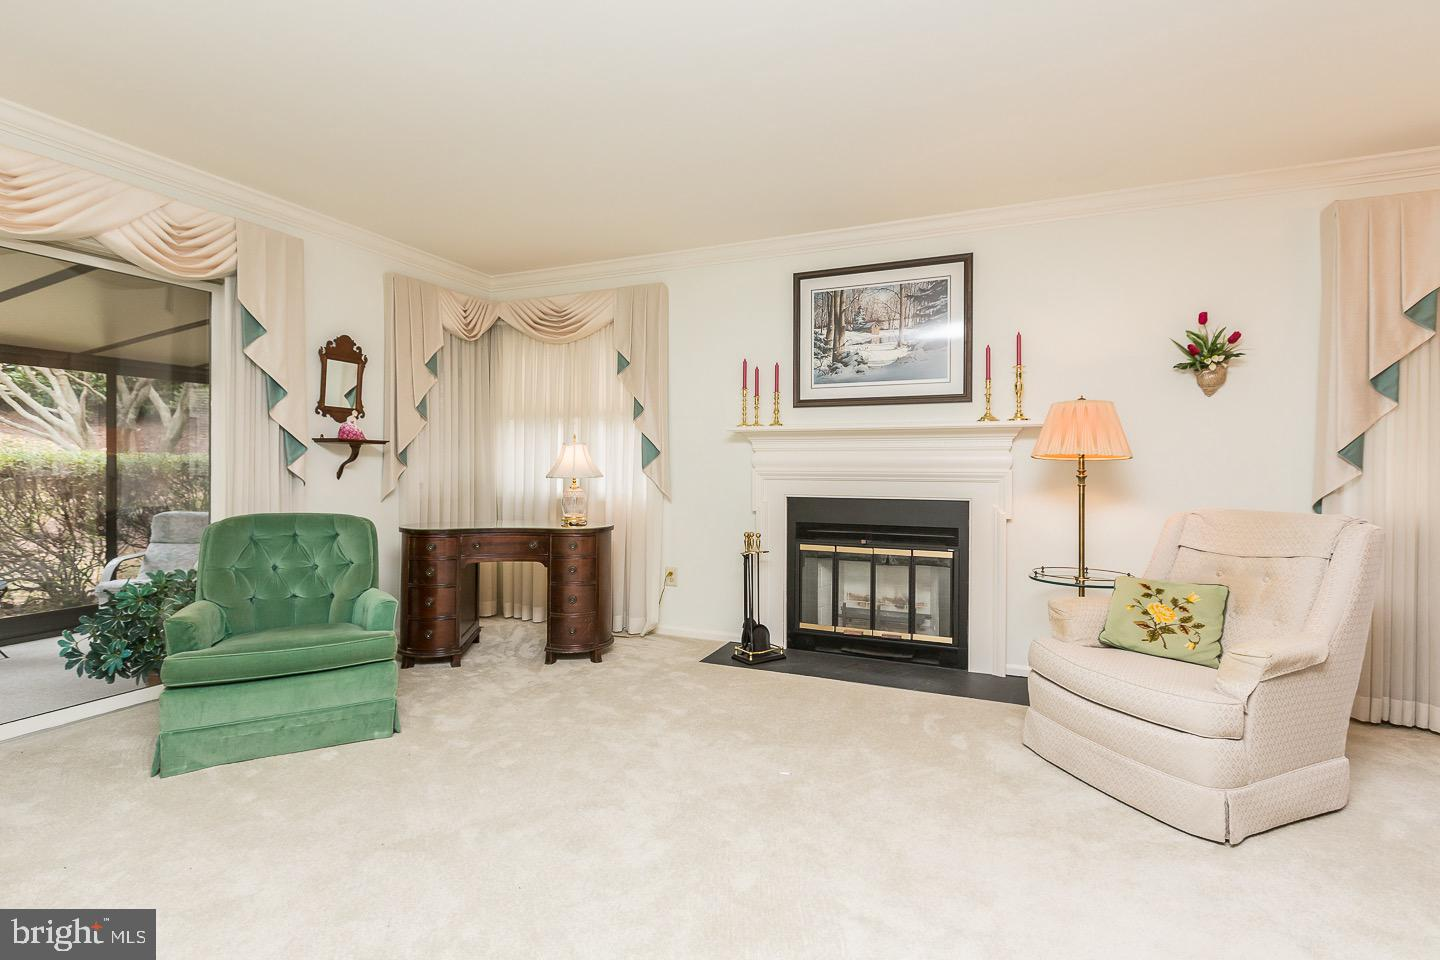 544 Franklin Way West Chester , PA 19380